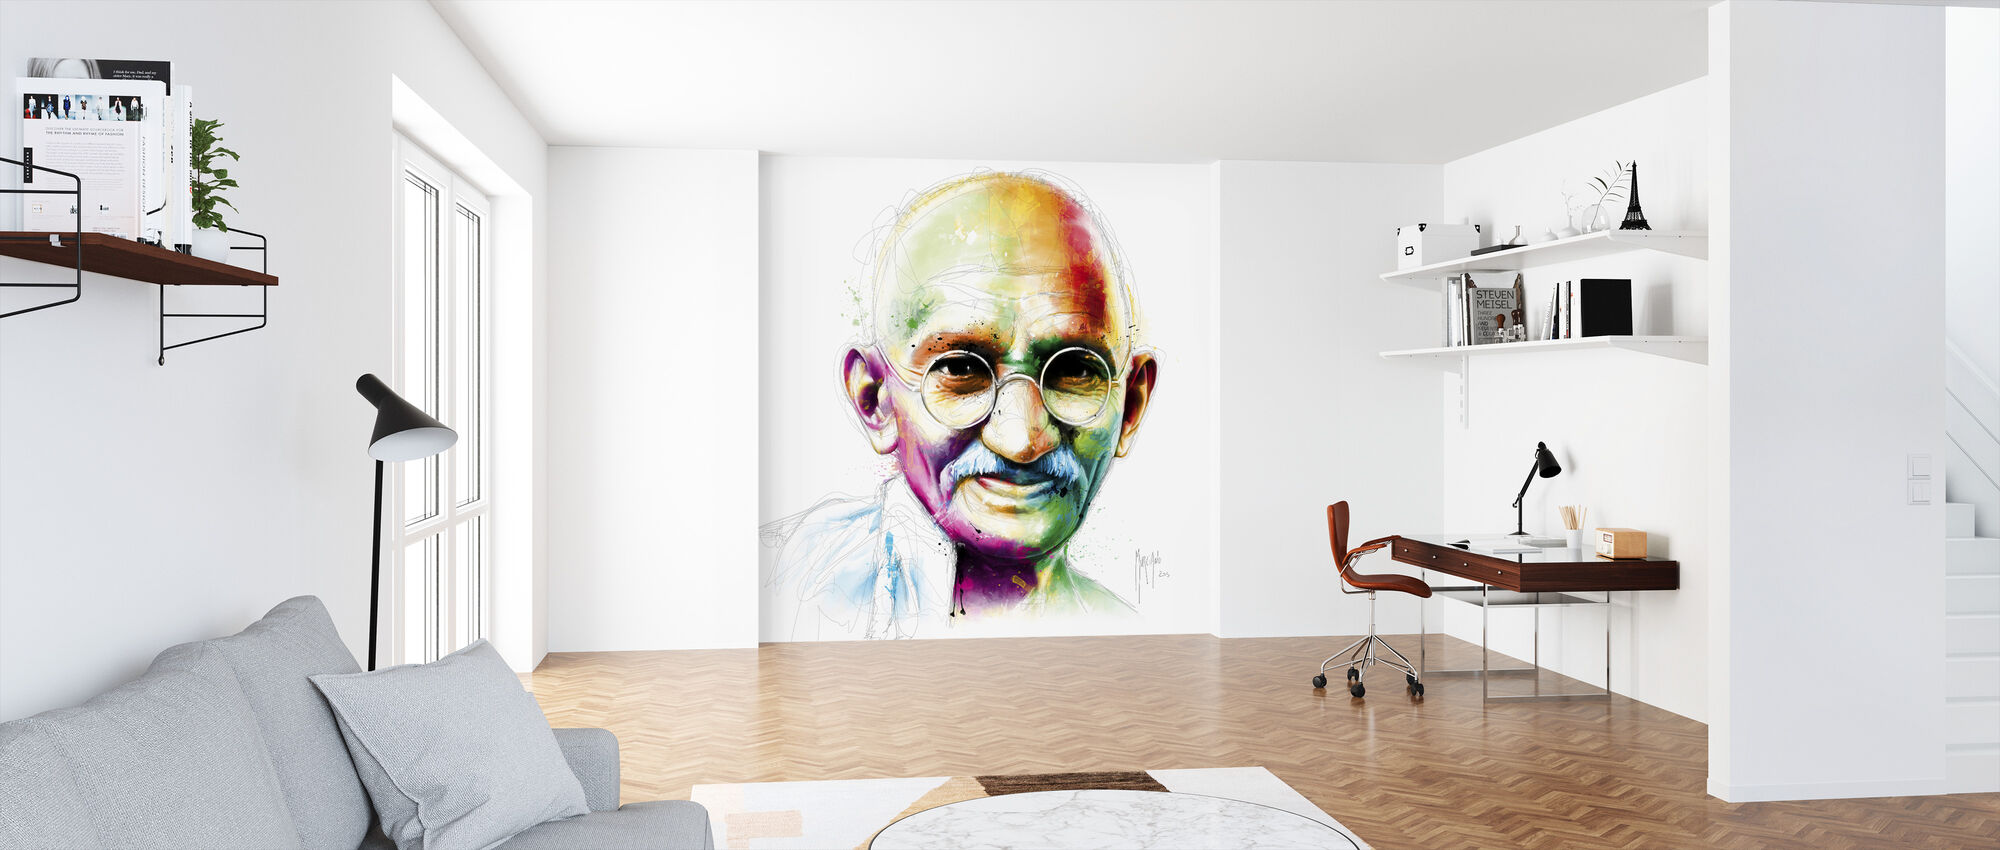 Gandhi - I am Love - Wallpaper - Office